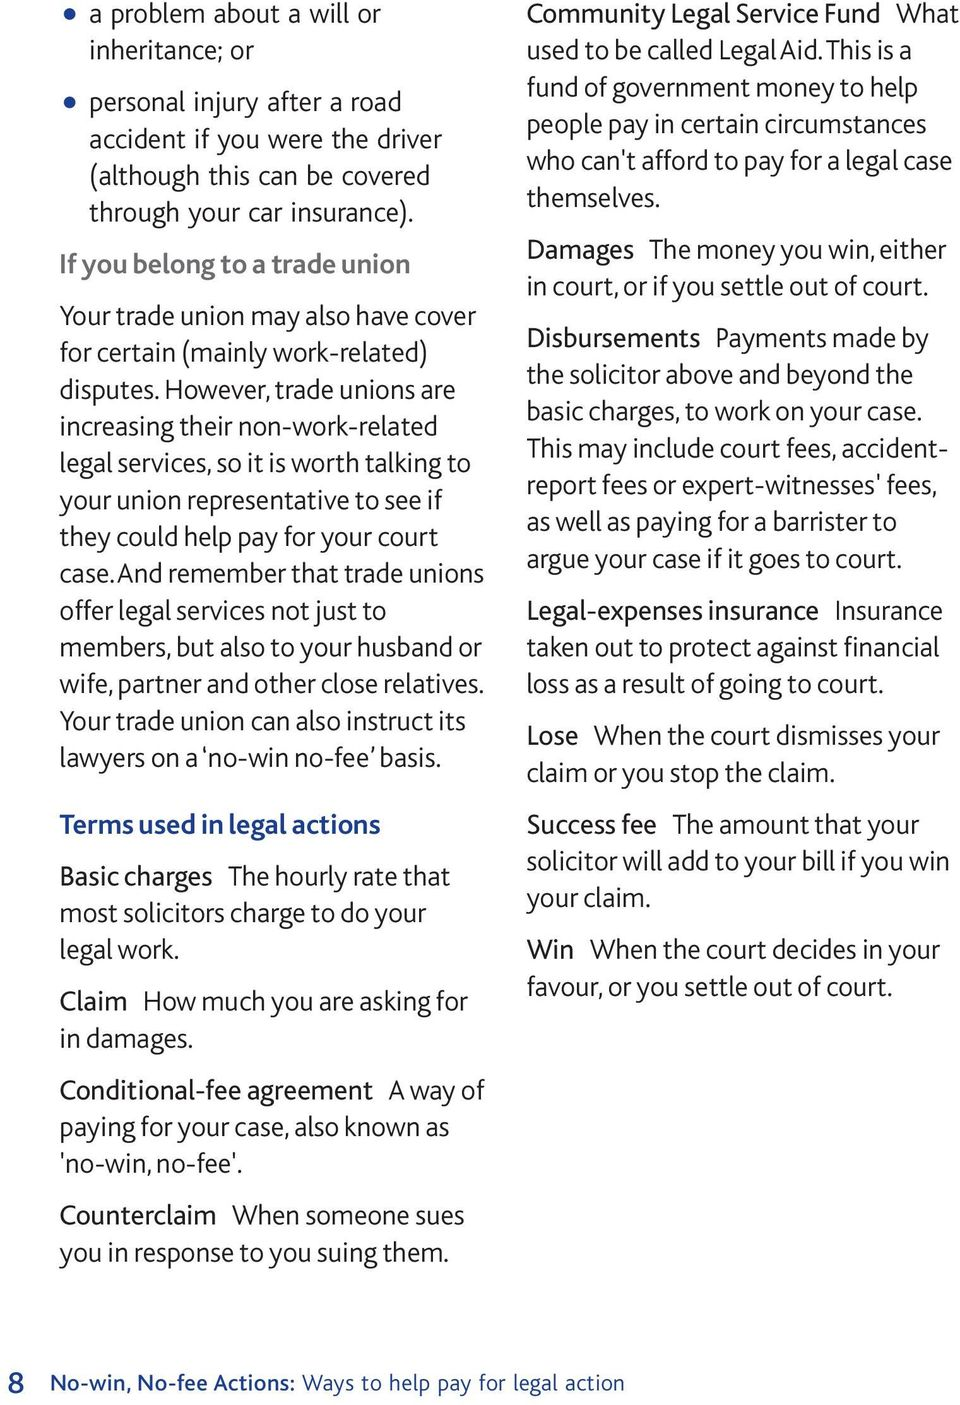 However, trade unions are increasing their non-work-related legal services, so it is worth talking to your union representative to see if they could help pay for your court case.